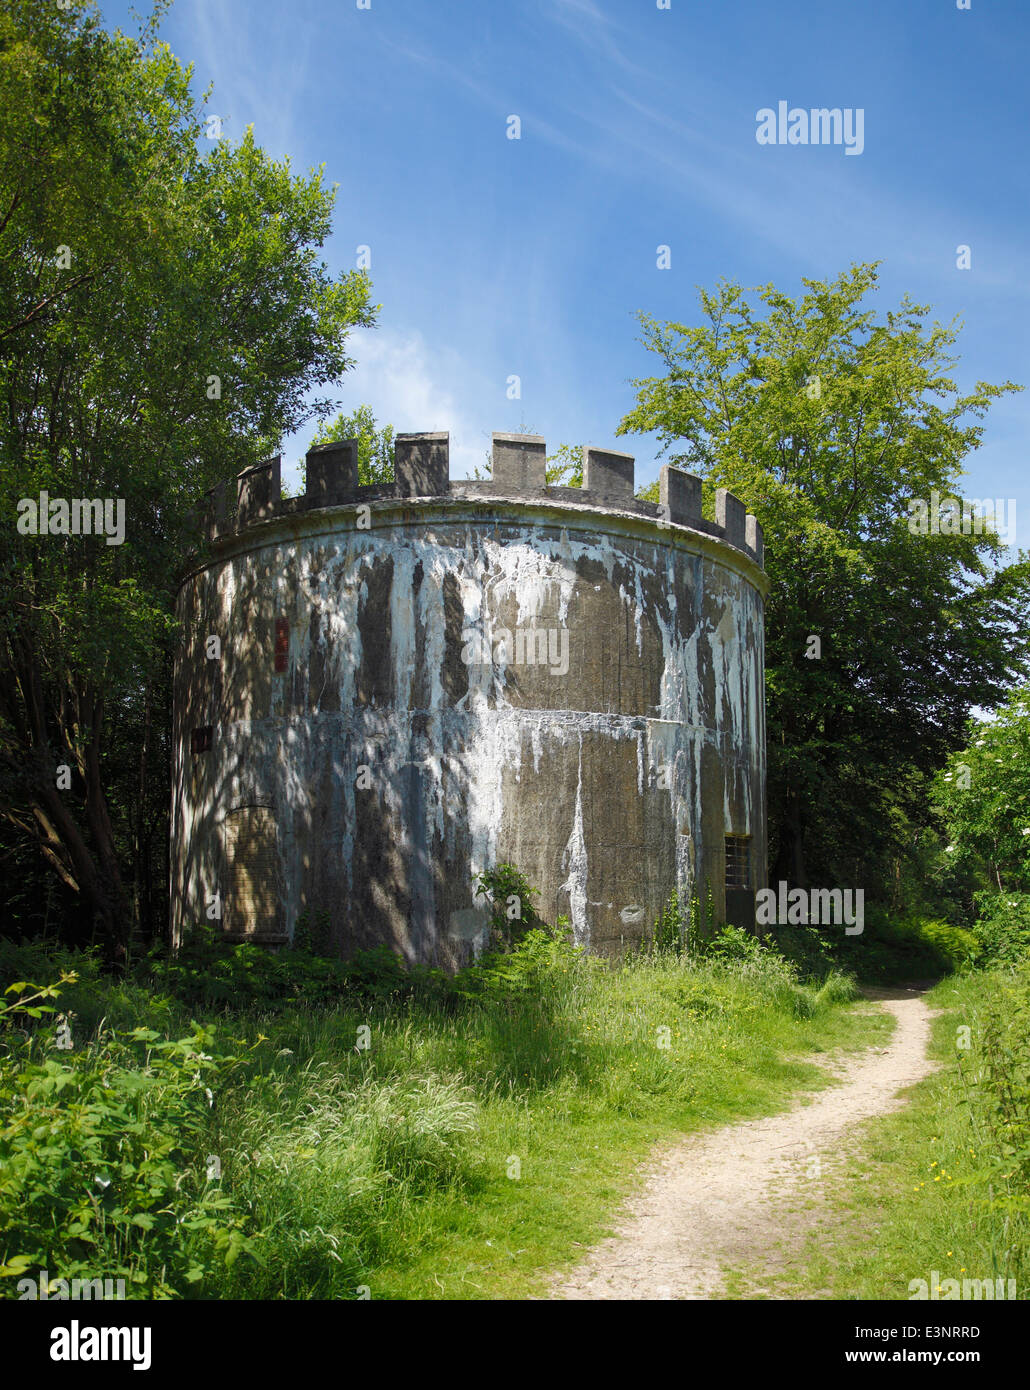 Old Water Tower Converted Into A Hibernaculum Home For Bats Toys